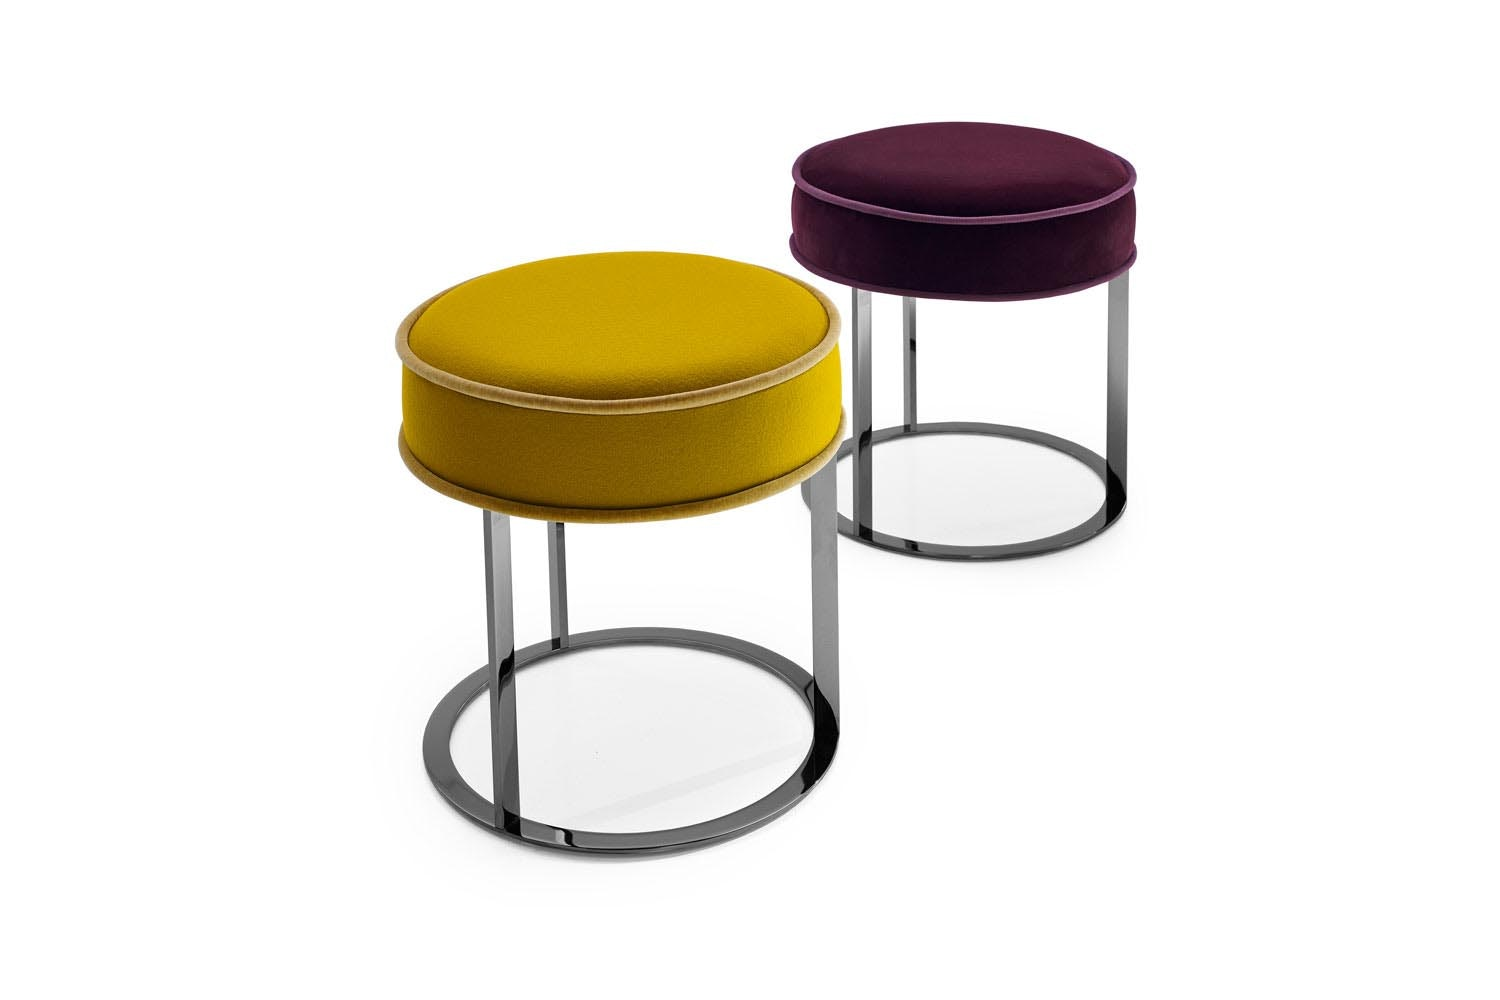 Lithos Stool by Antonio Citterio for Maxalto